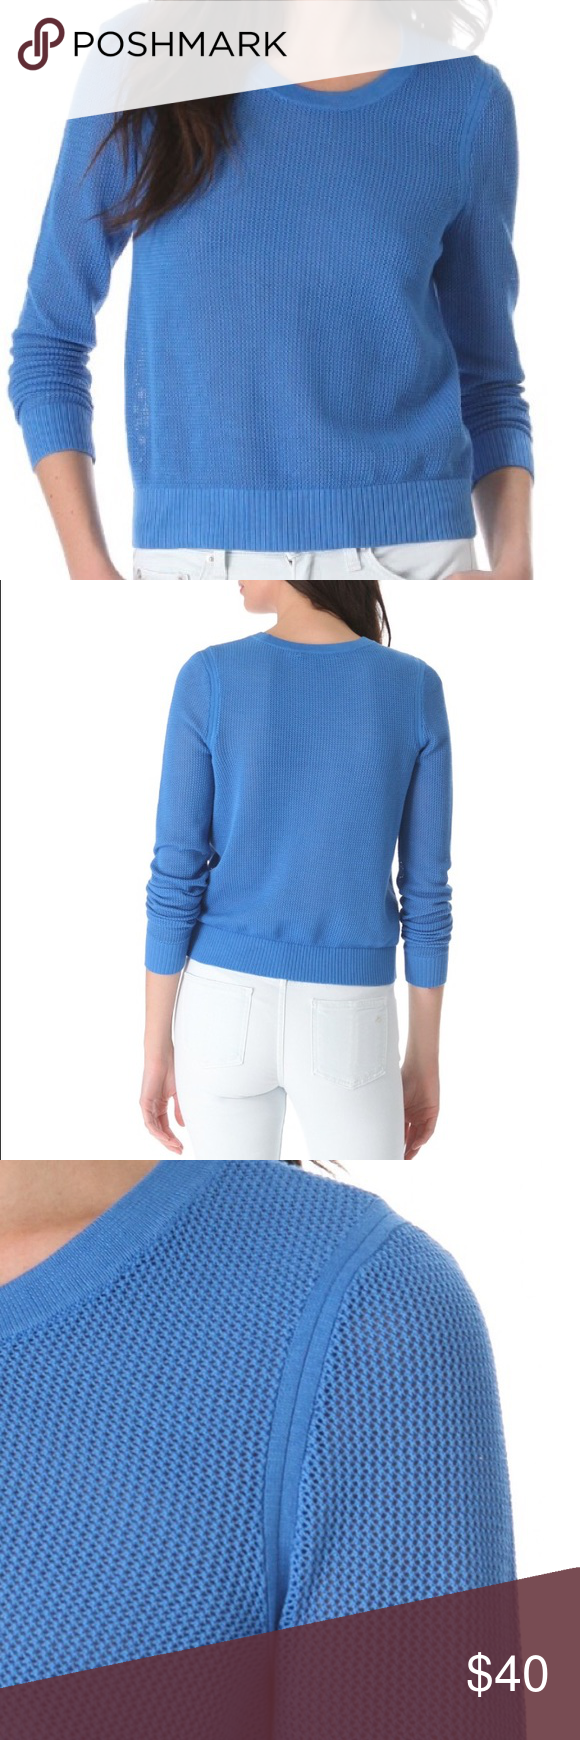 Rag & Bone/JEAN mesh sweater Fitted, ocean blue mesh/like sweater. Not see through. Crew neck. Gently worn. Size is M but fits like a S. 100%cotton rag & bone Sweaters Crew & Scoop Necks